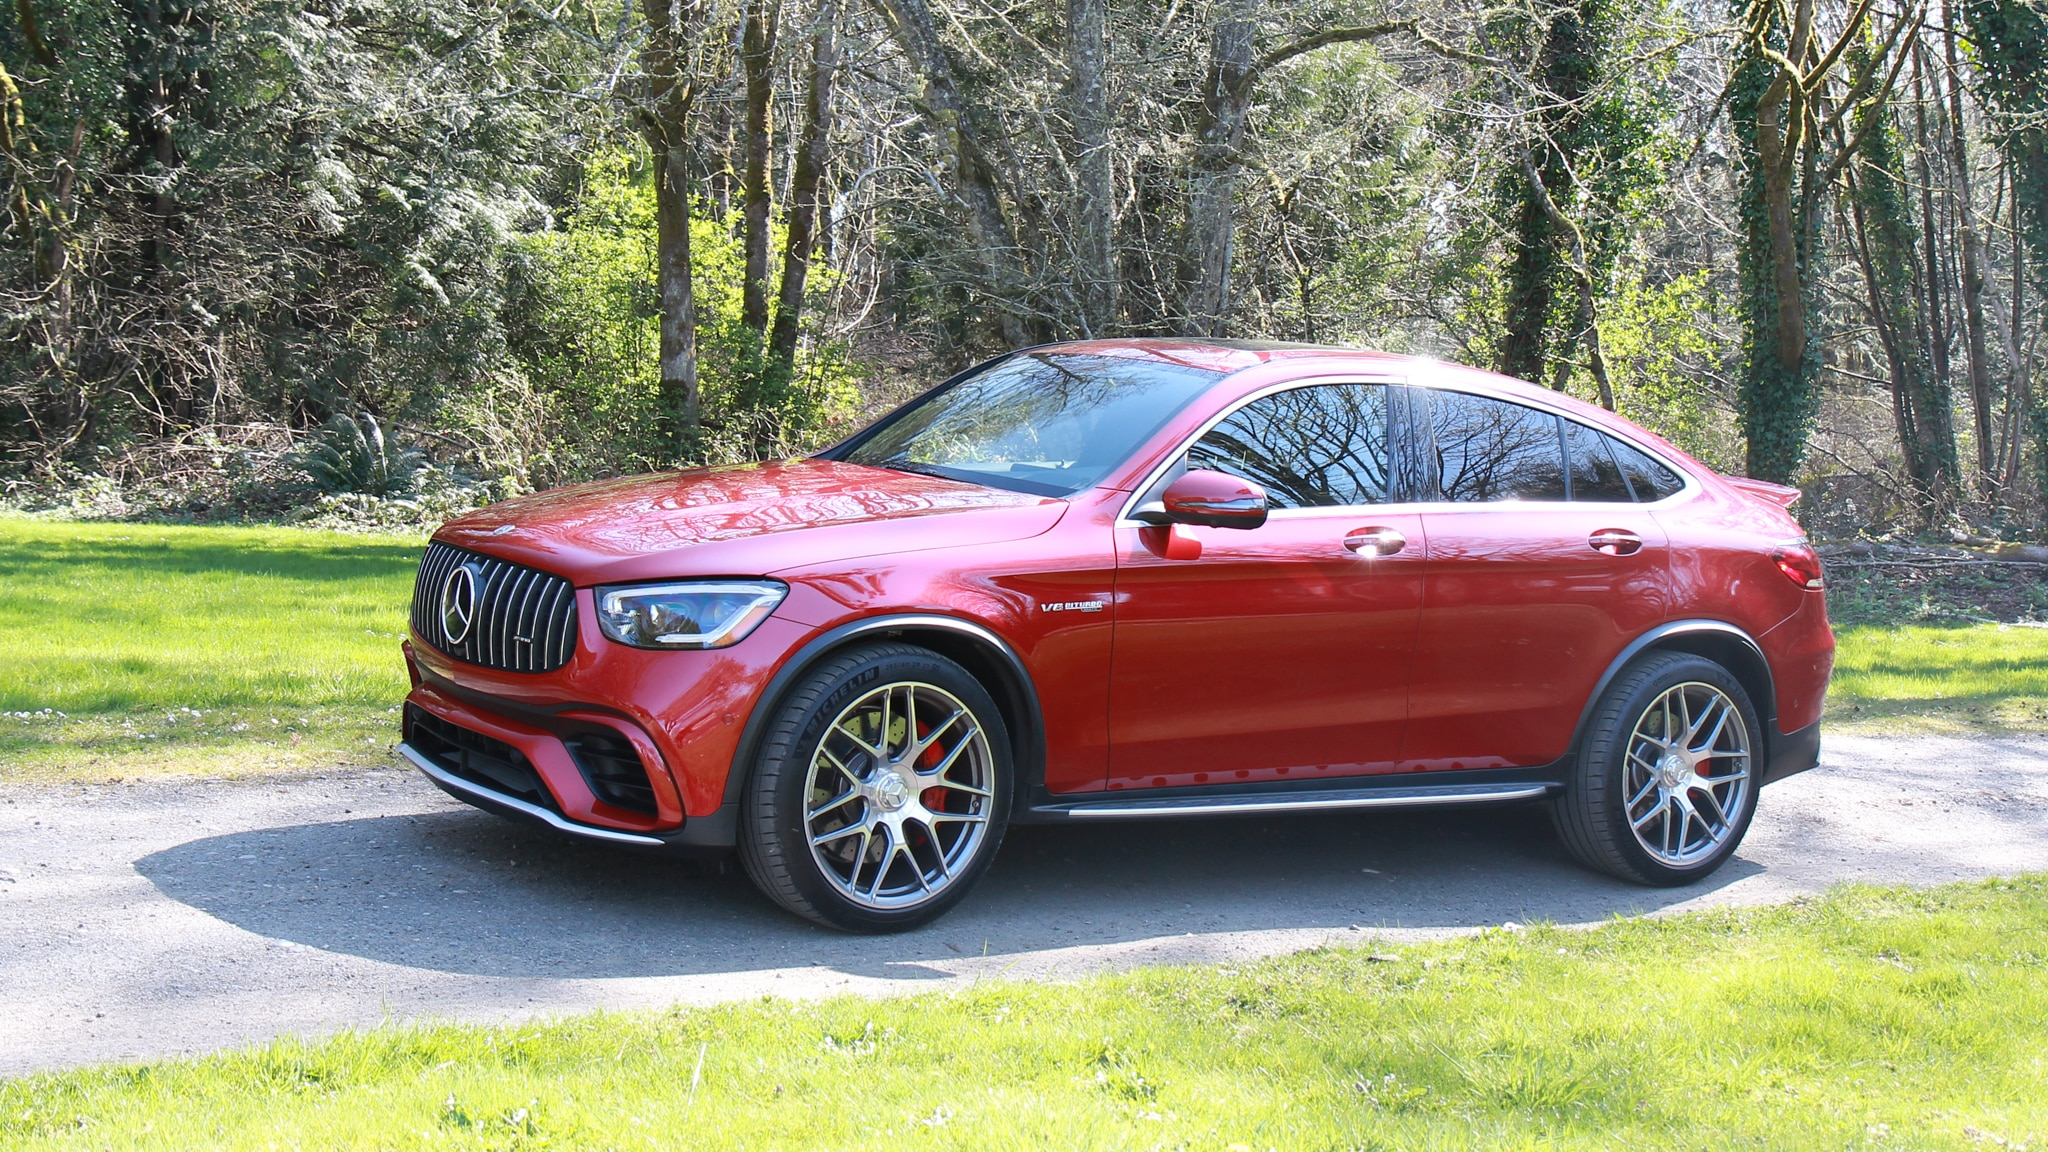 2020 Mercedes AMG GLC 63 S Coupe Five Things to Love